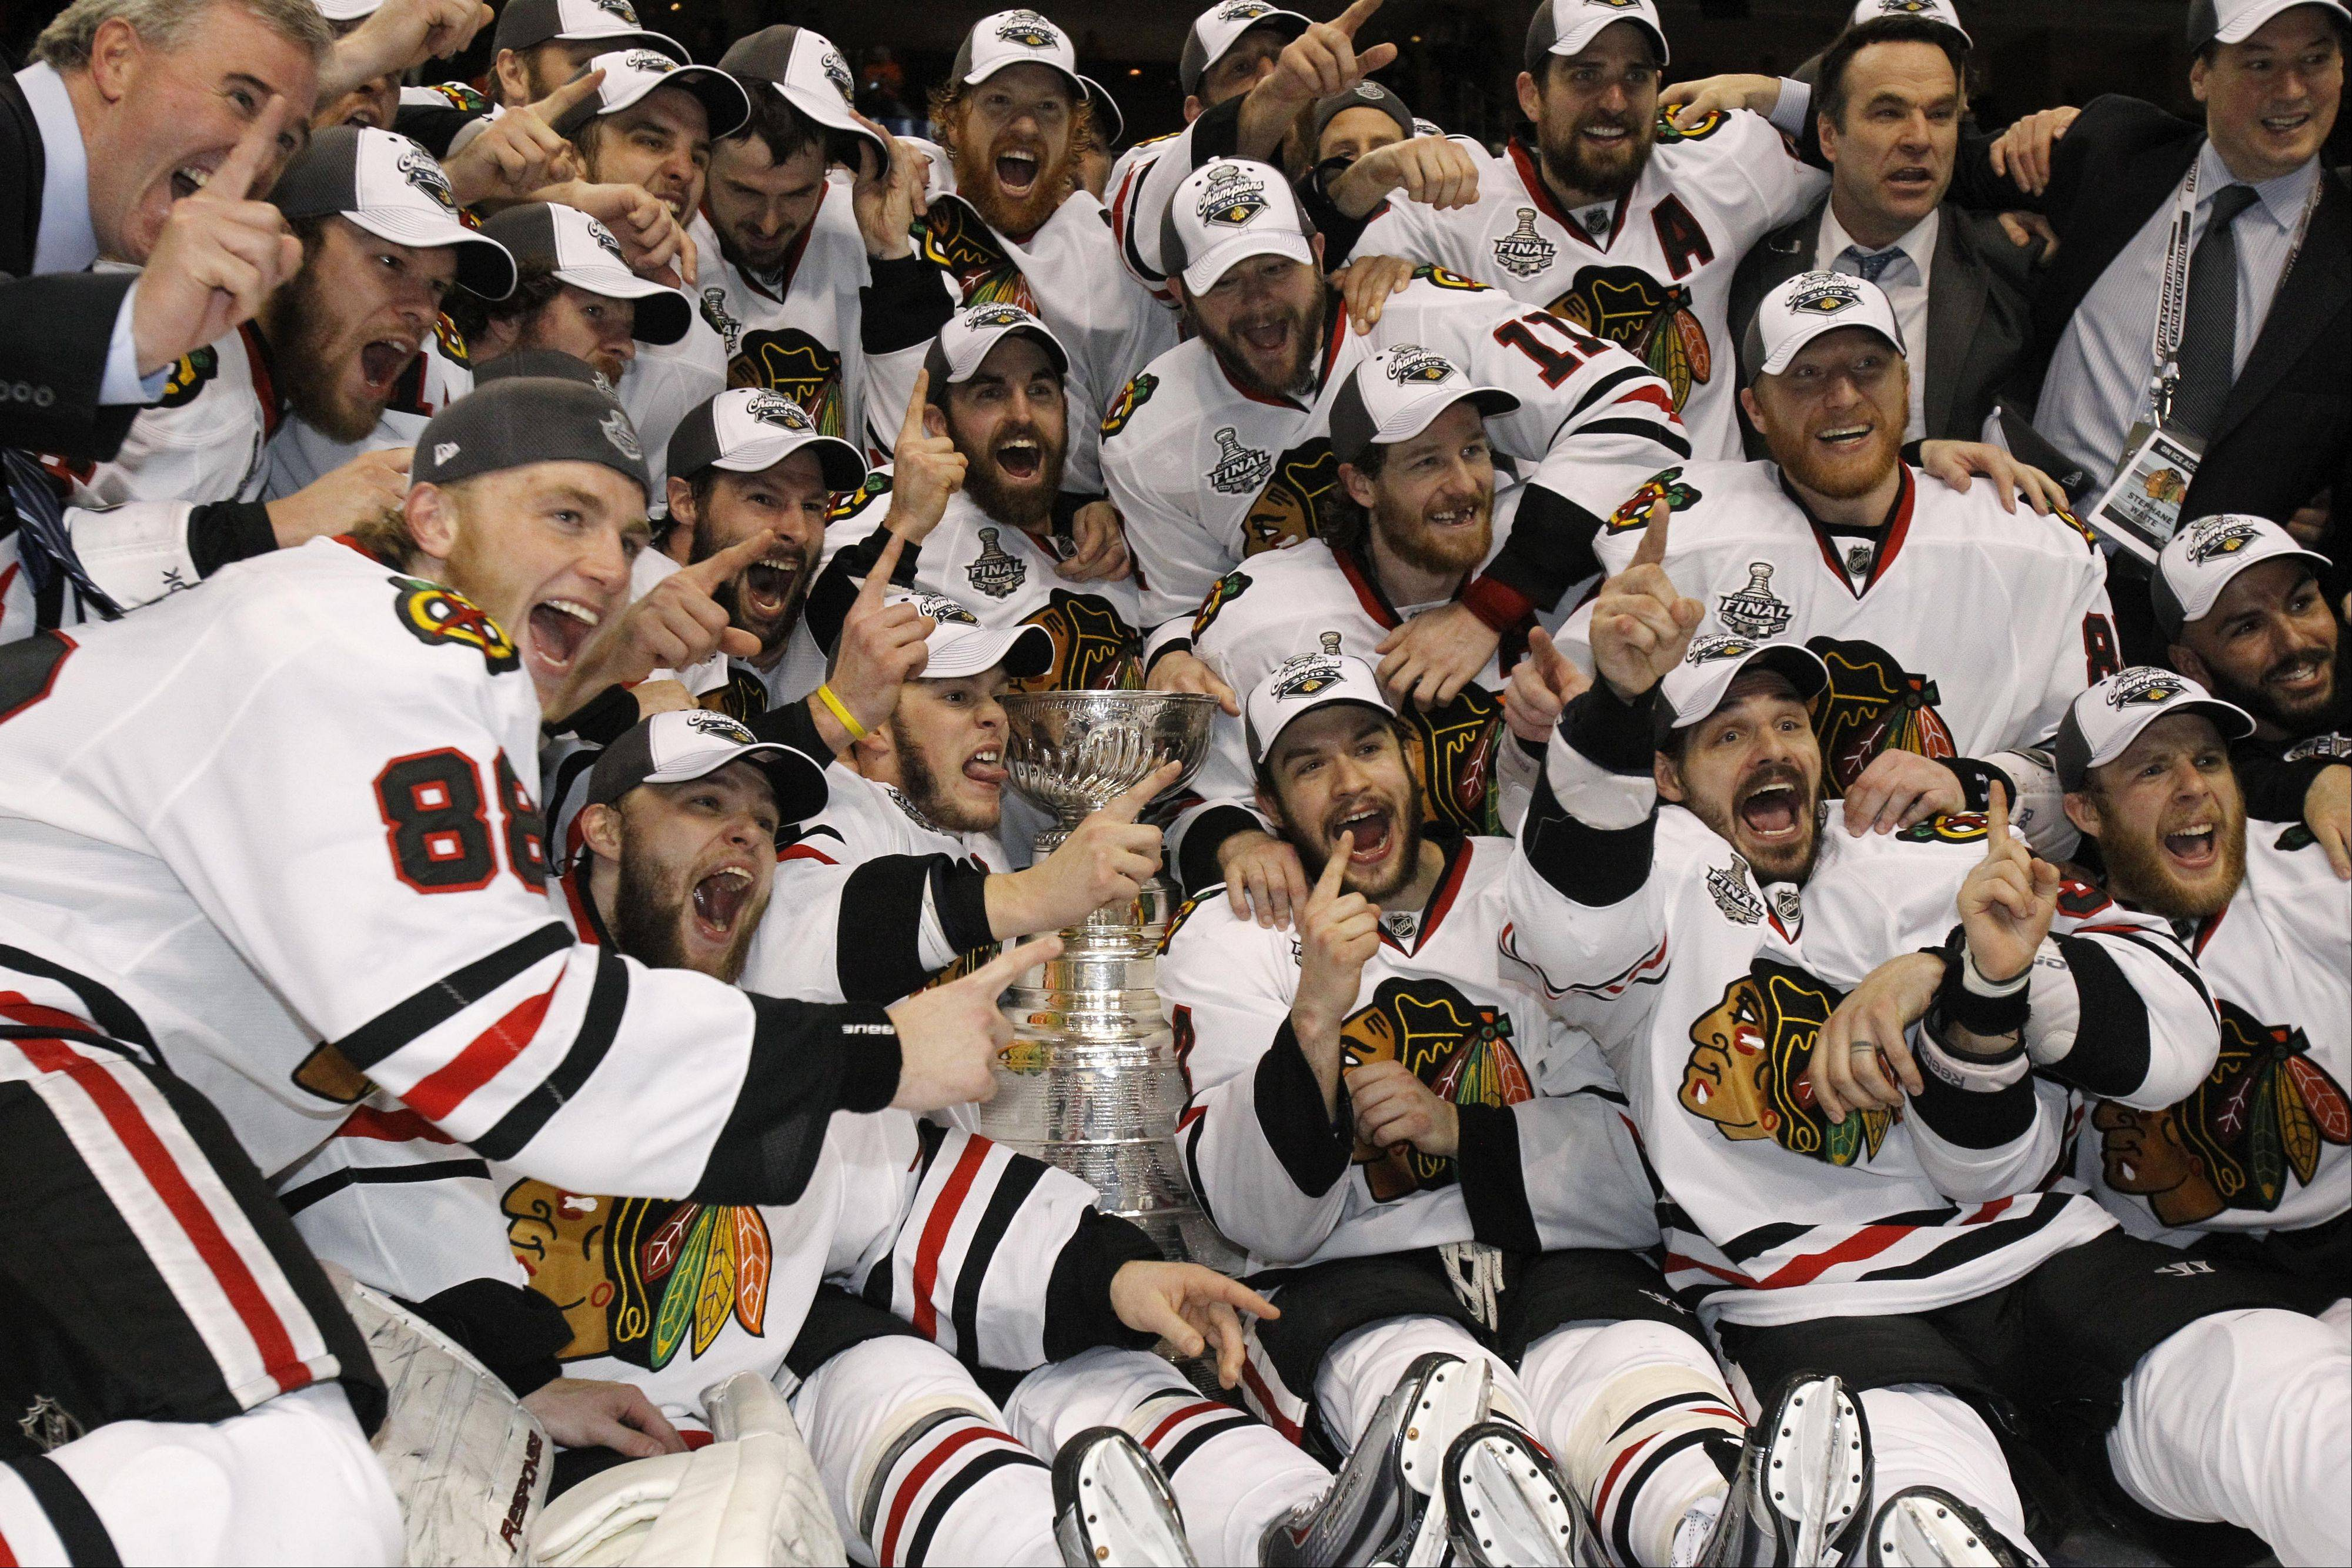 The Blackhawks, who won the Stanley Cup in 2010, are among six different teams to have won the championship since 2006. As more proof of parity in the NHL, 10 different teams have competed for the Cup in that same time.